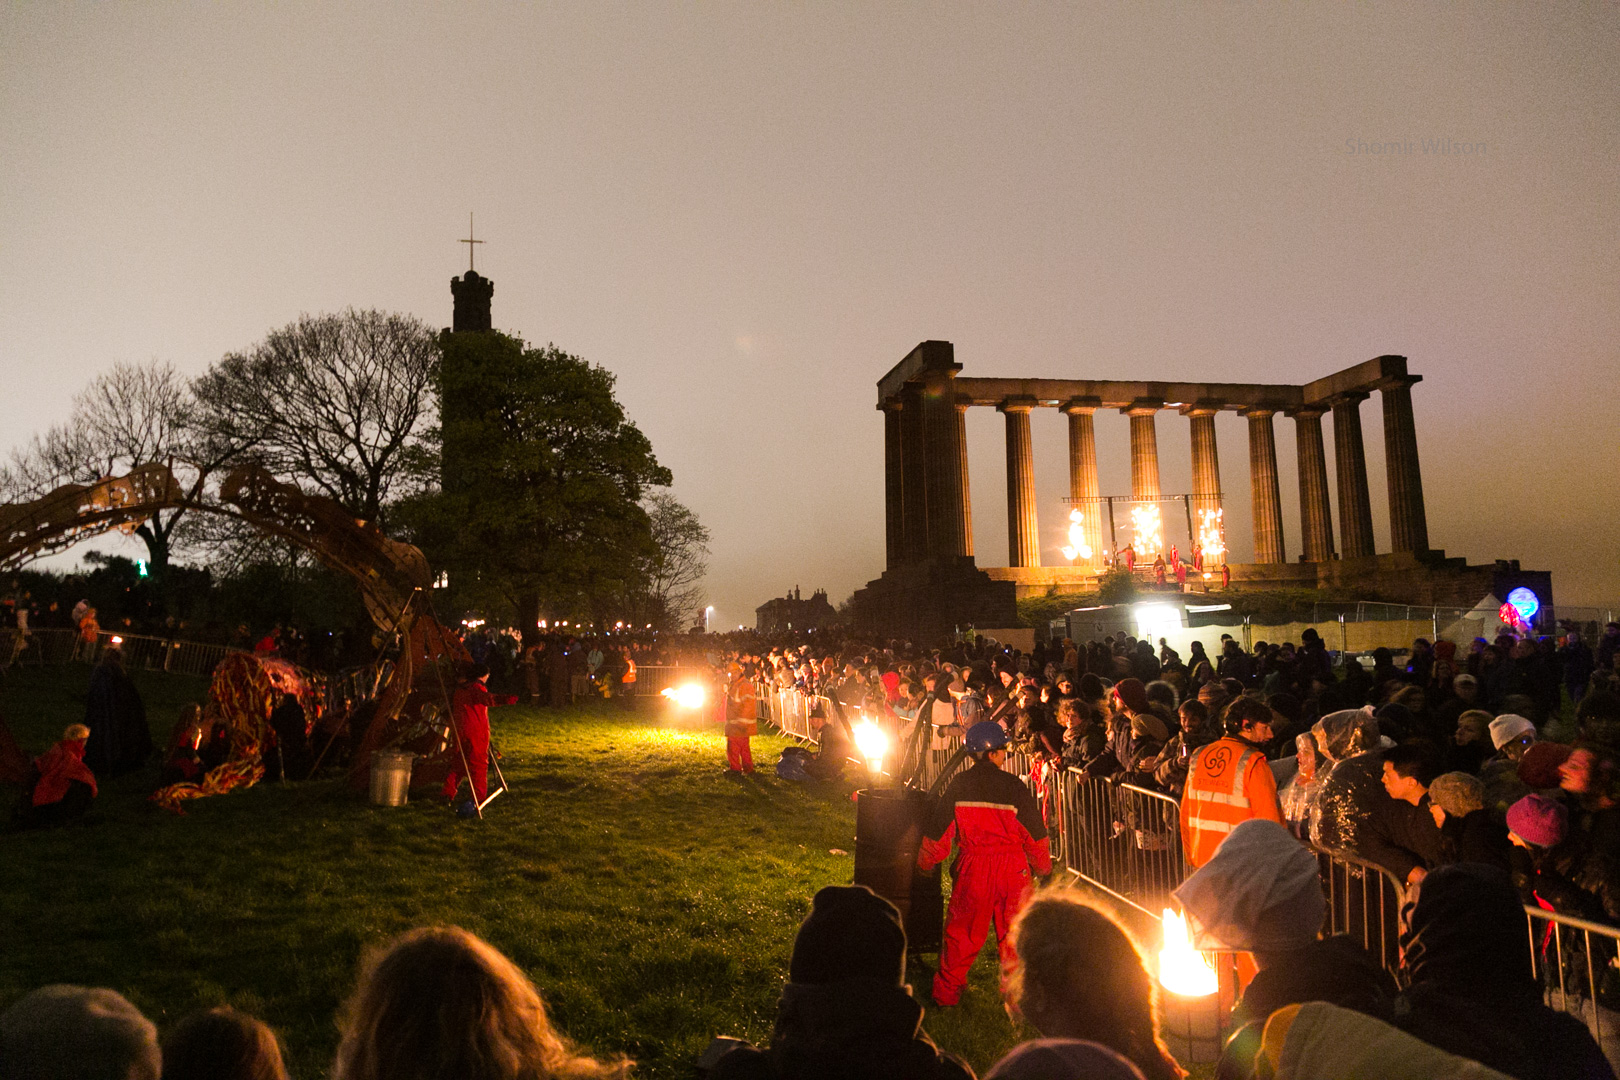 A crowd and event performers with fire at dusk